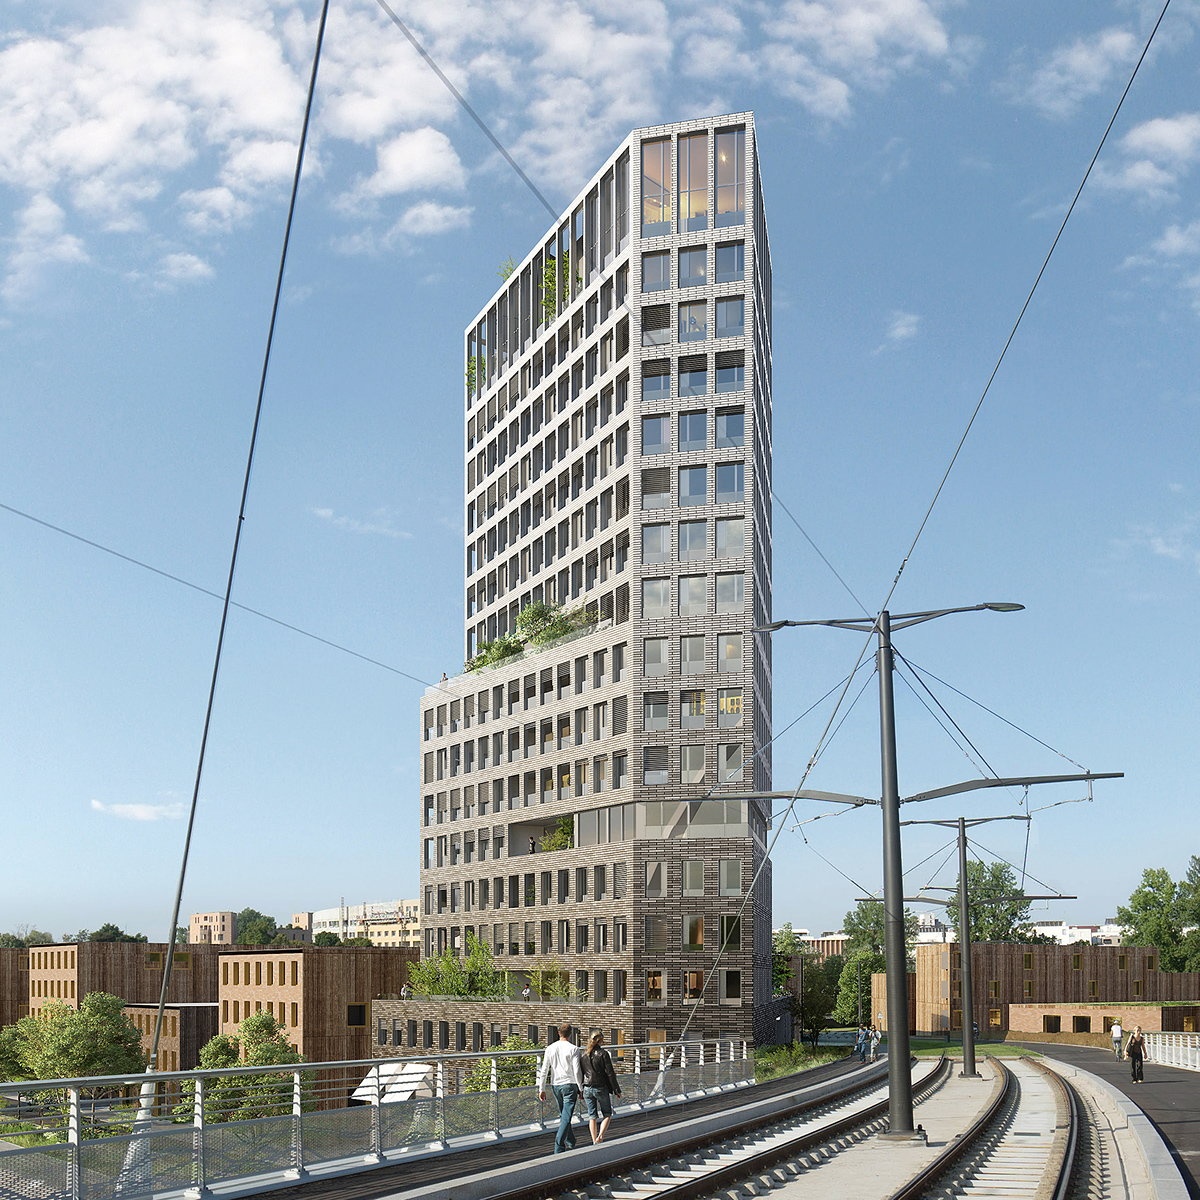 KCAP and OSLO Win Competition for Residential Tower in Strasbourg